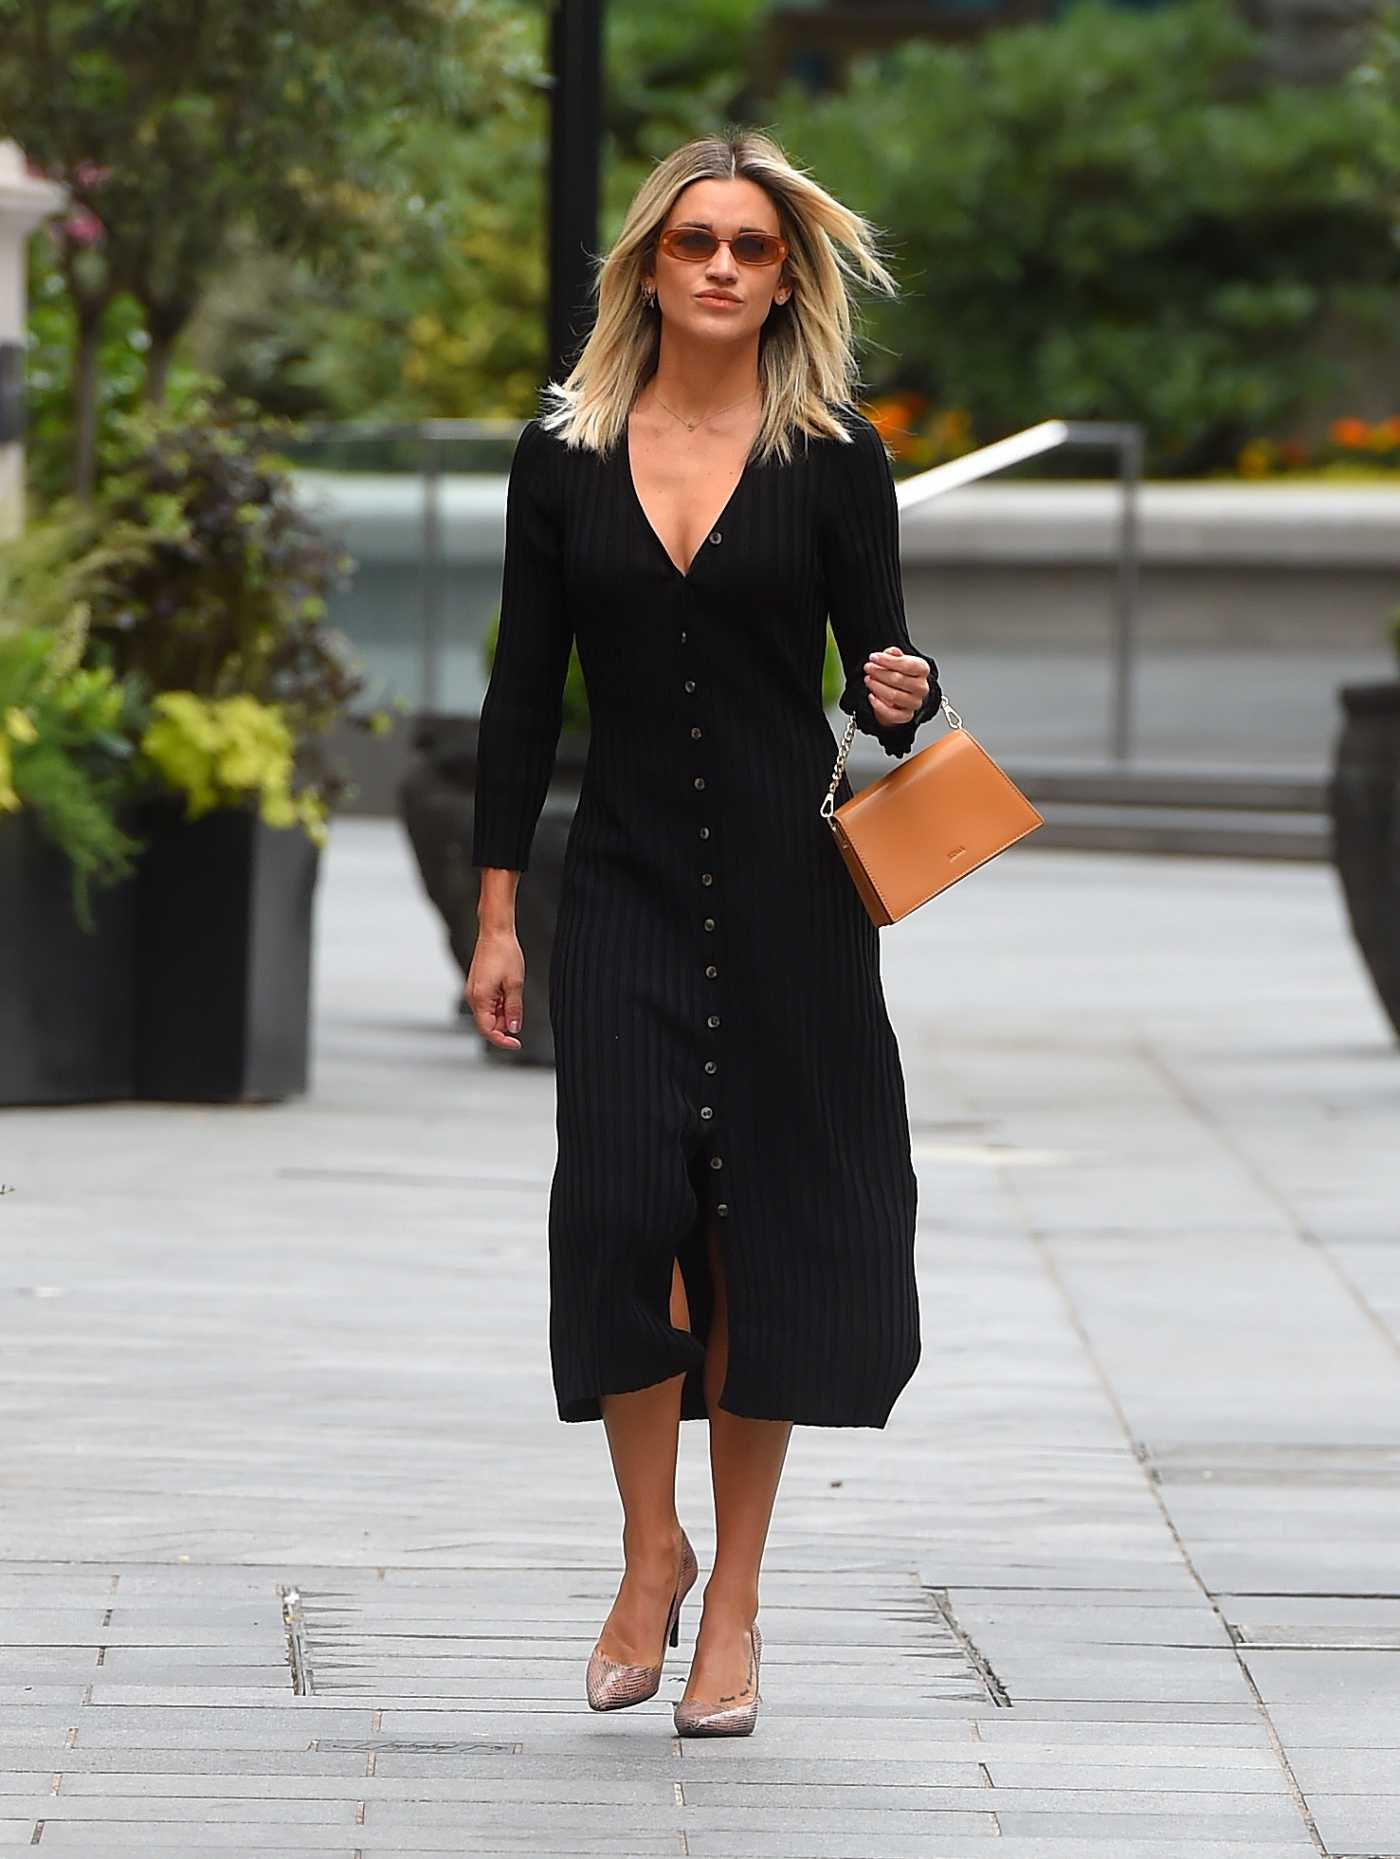 Ashley Roberts in a Black Dress Arrives at the Global Offices in London 06/08/2020